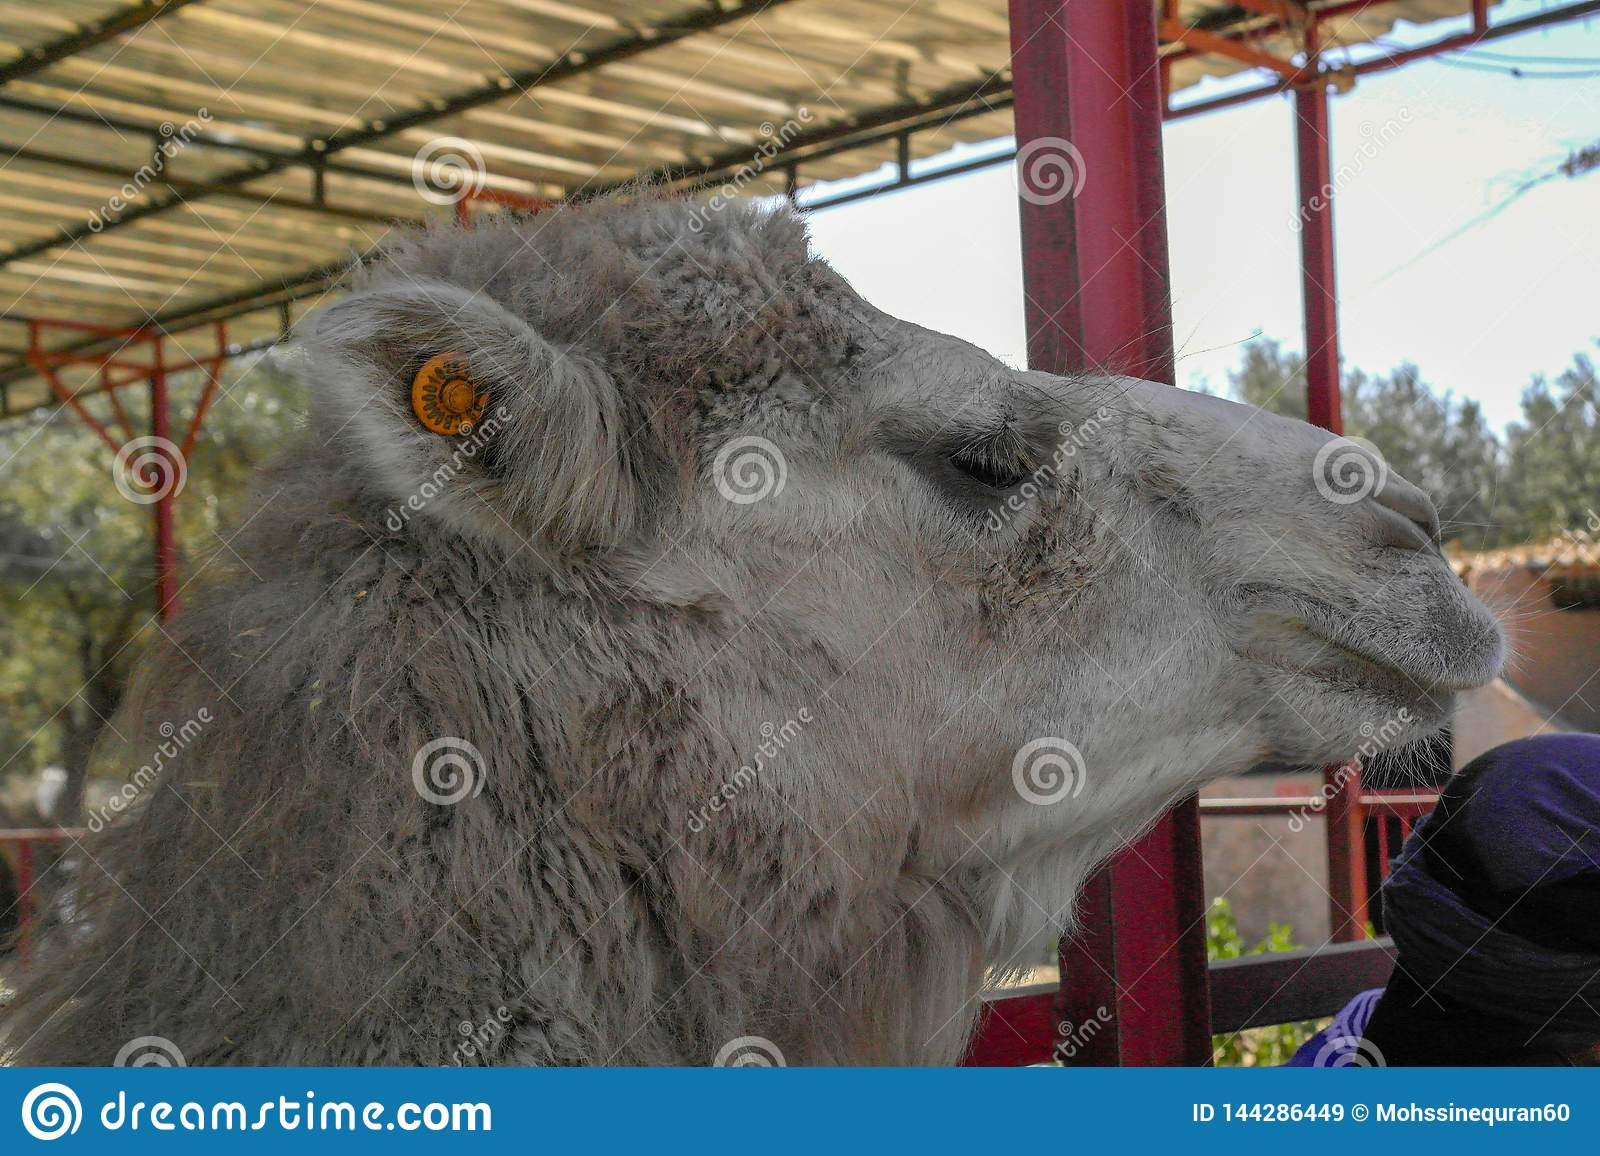 The Moroccan Camel